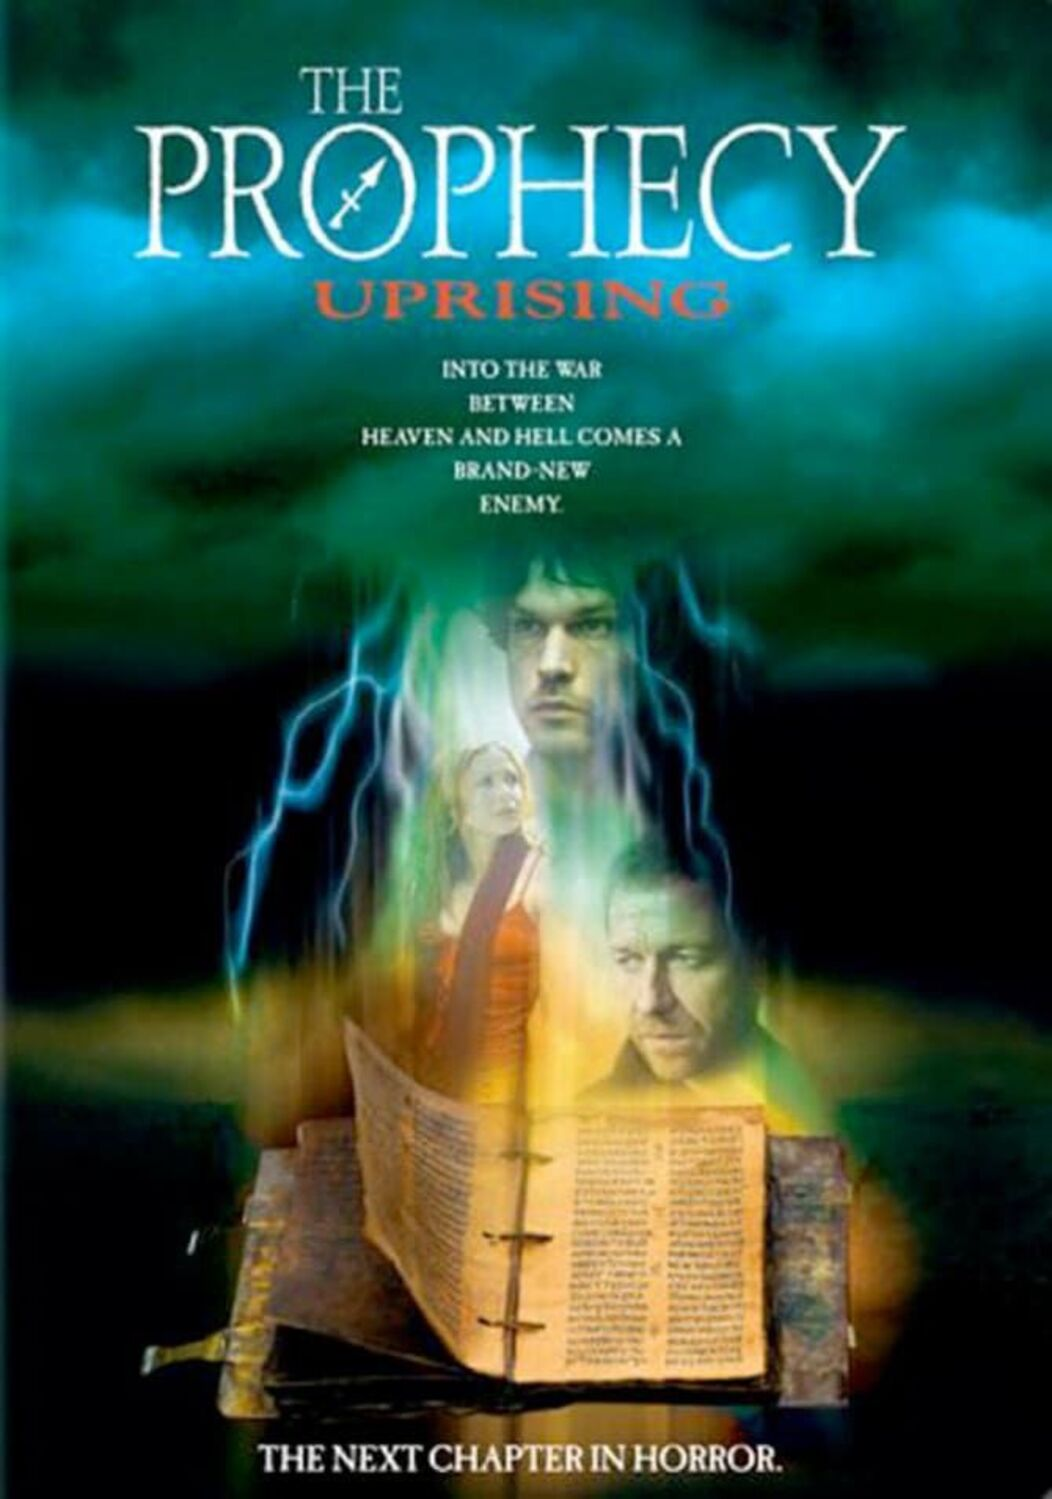 Affiche Poster prophecy uprising disney dimension